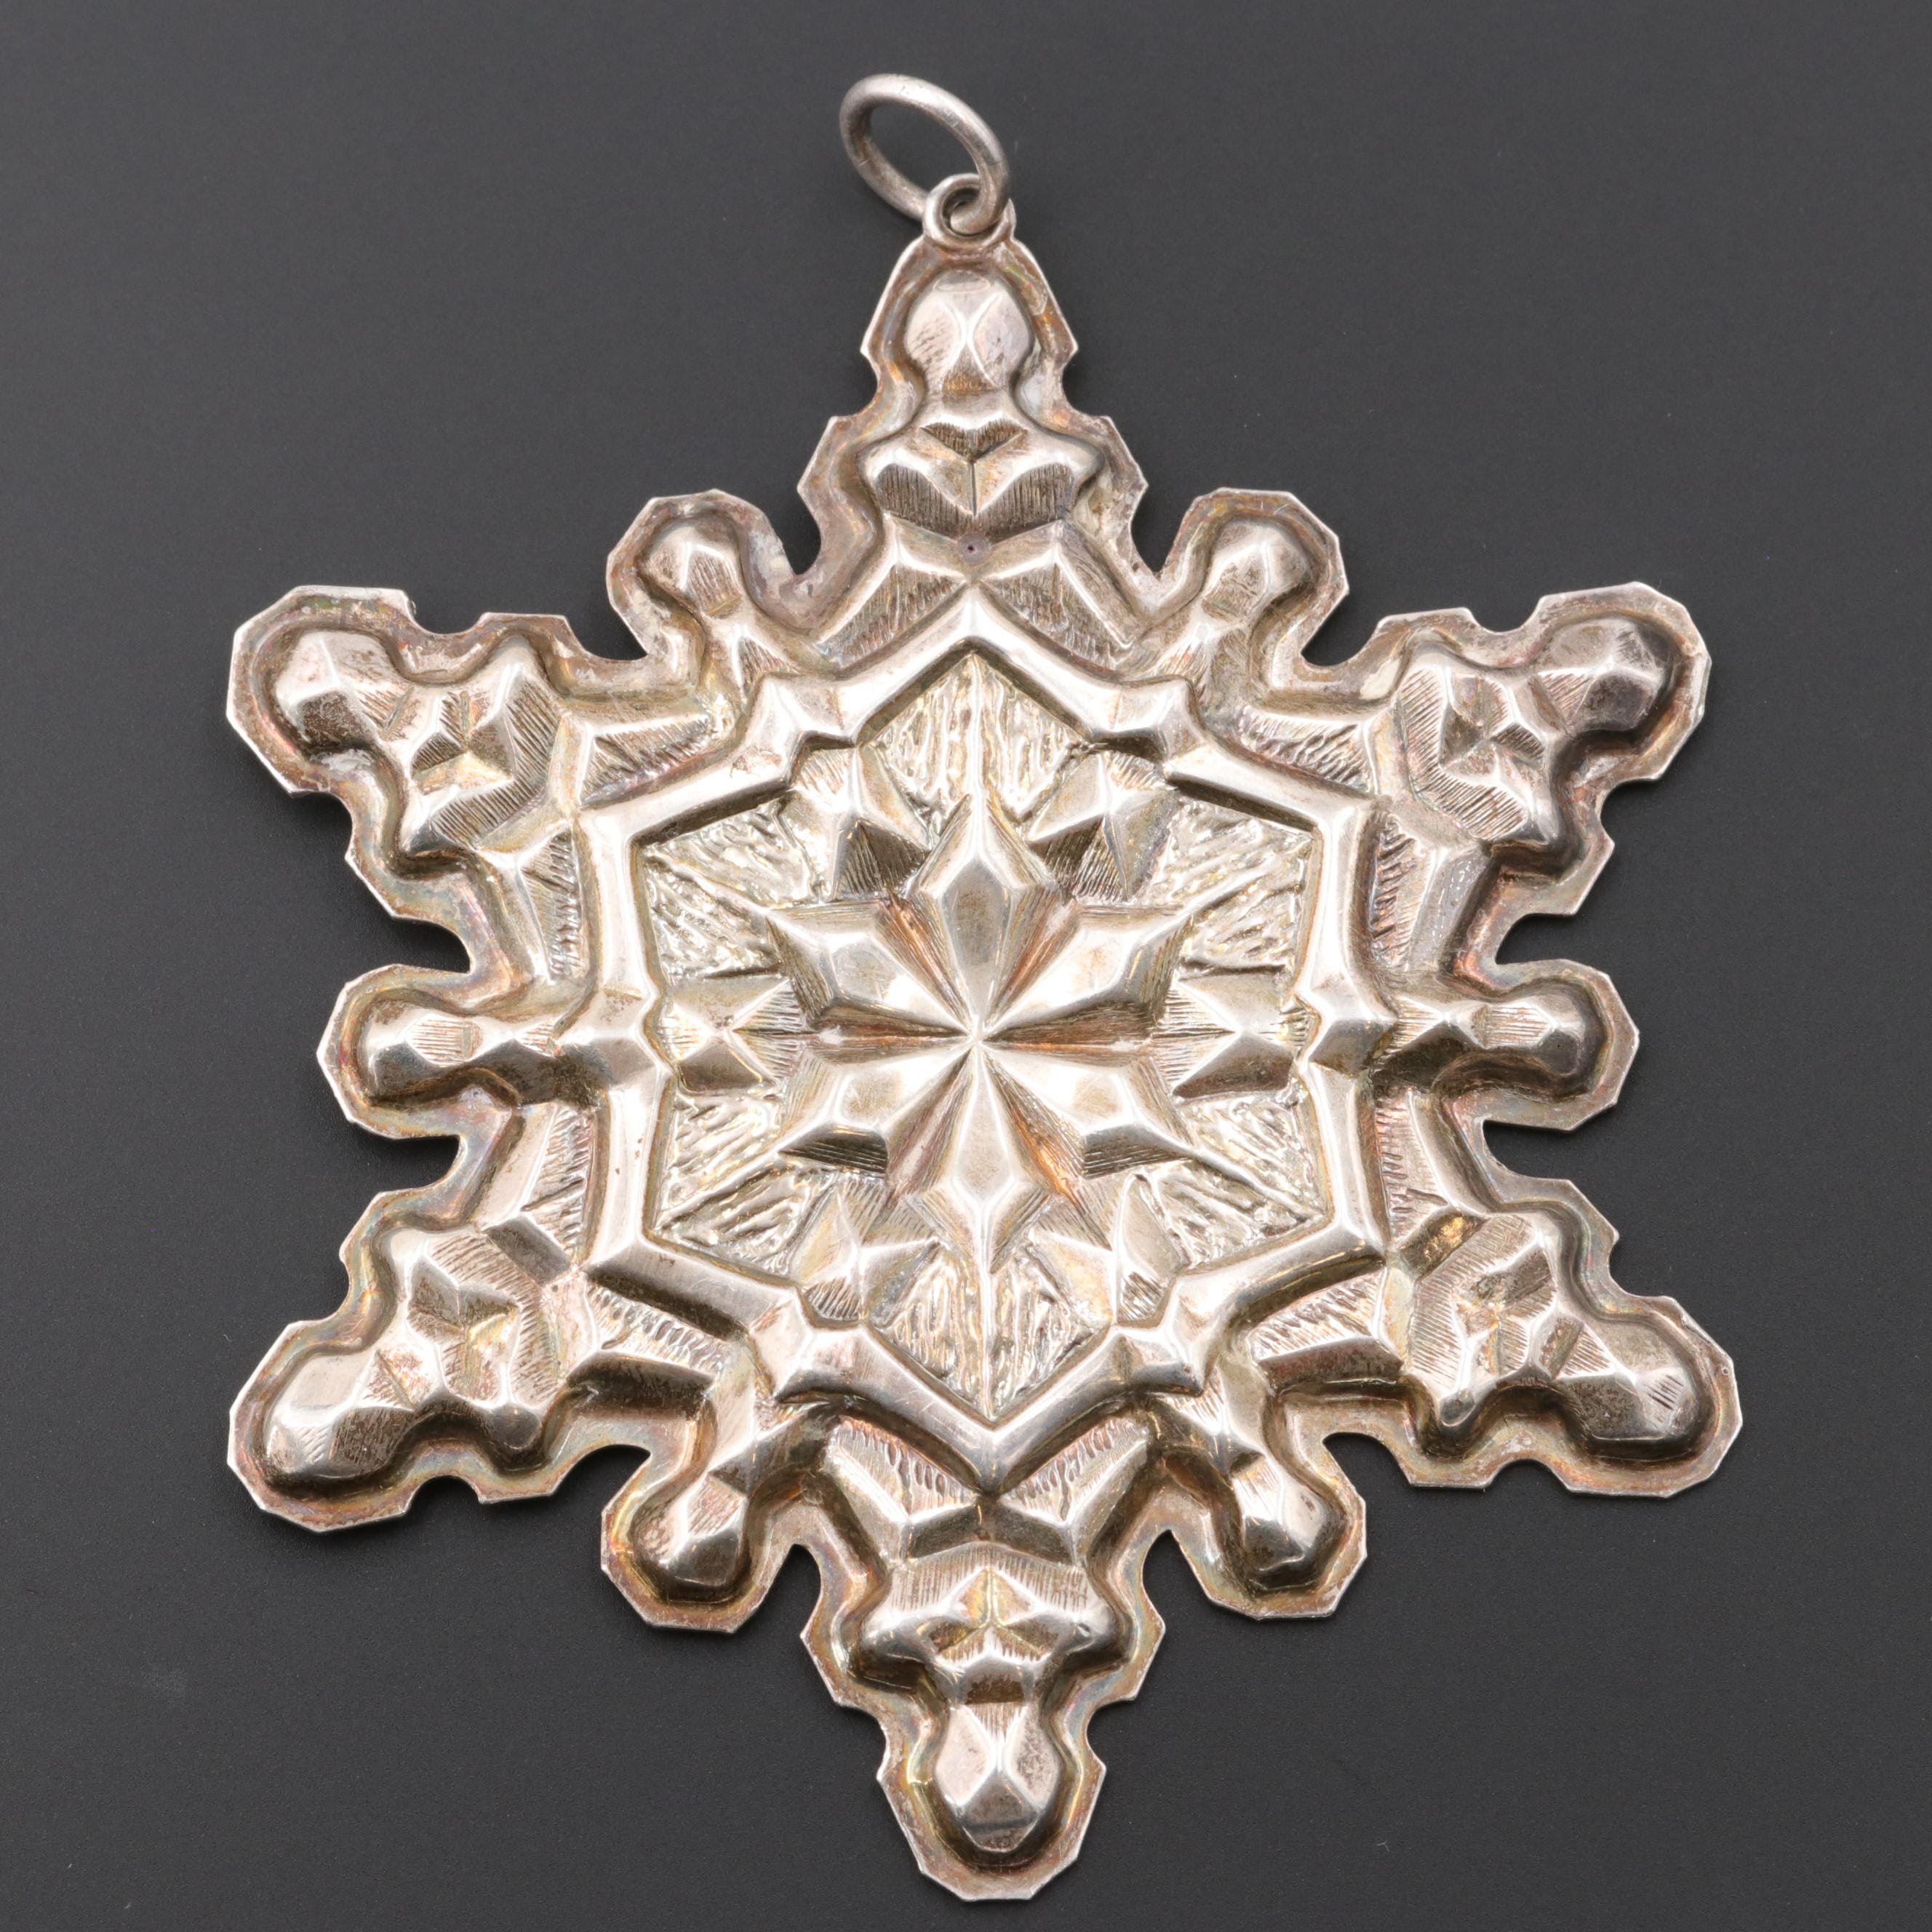 Circa 1971 Gorham Sterling Silver Snowflake Christmas Ornament